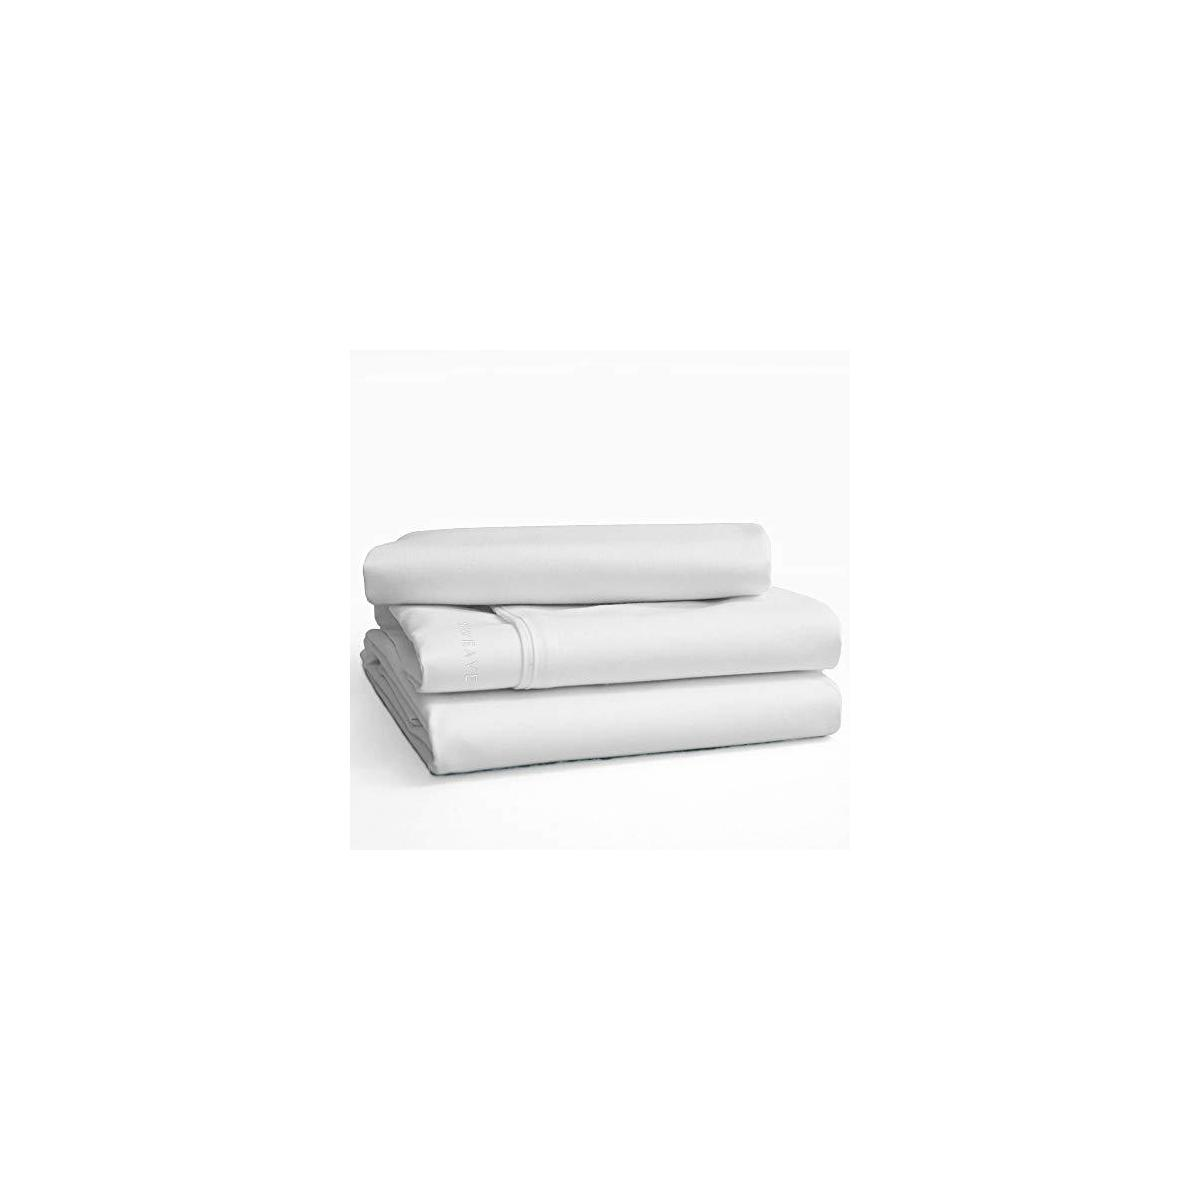 Sweave Eucalyptus Tencel & Egyptian Cotton Queen Size Fitted Sheet Set, Luxury Bedding, Insanely Soft, Comfortably Cool Bed Sheets, Percale, Anti-Wrinkle, Eco-Friendly.